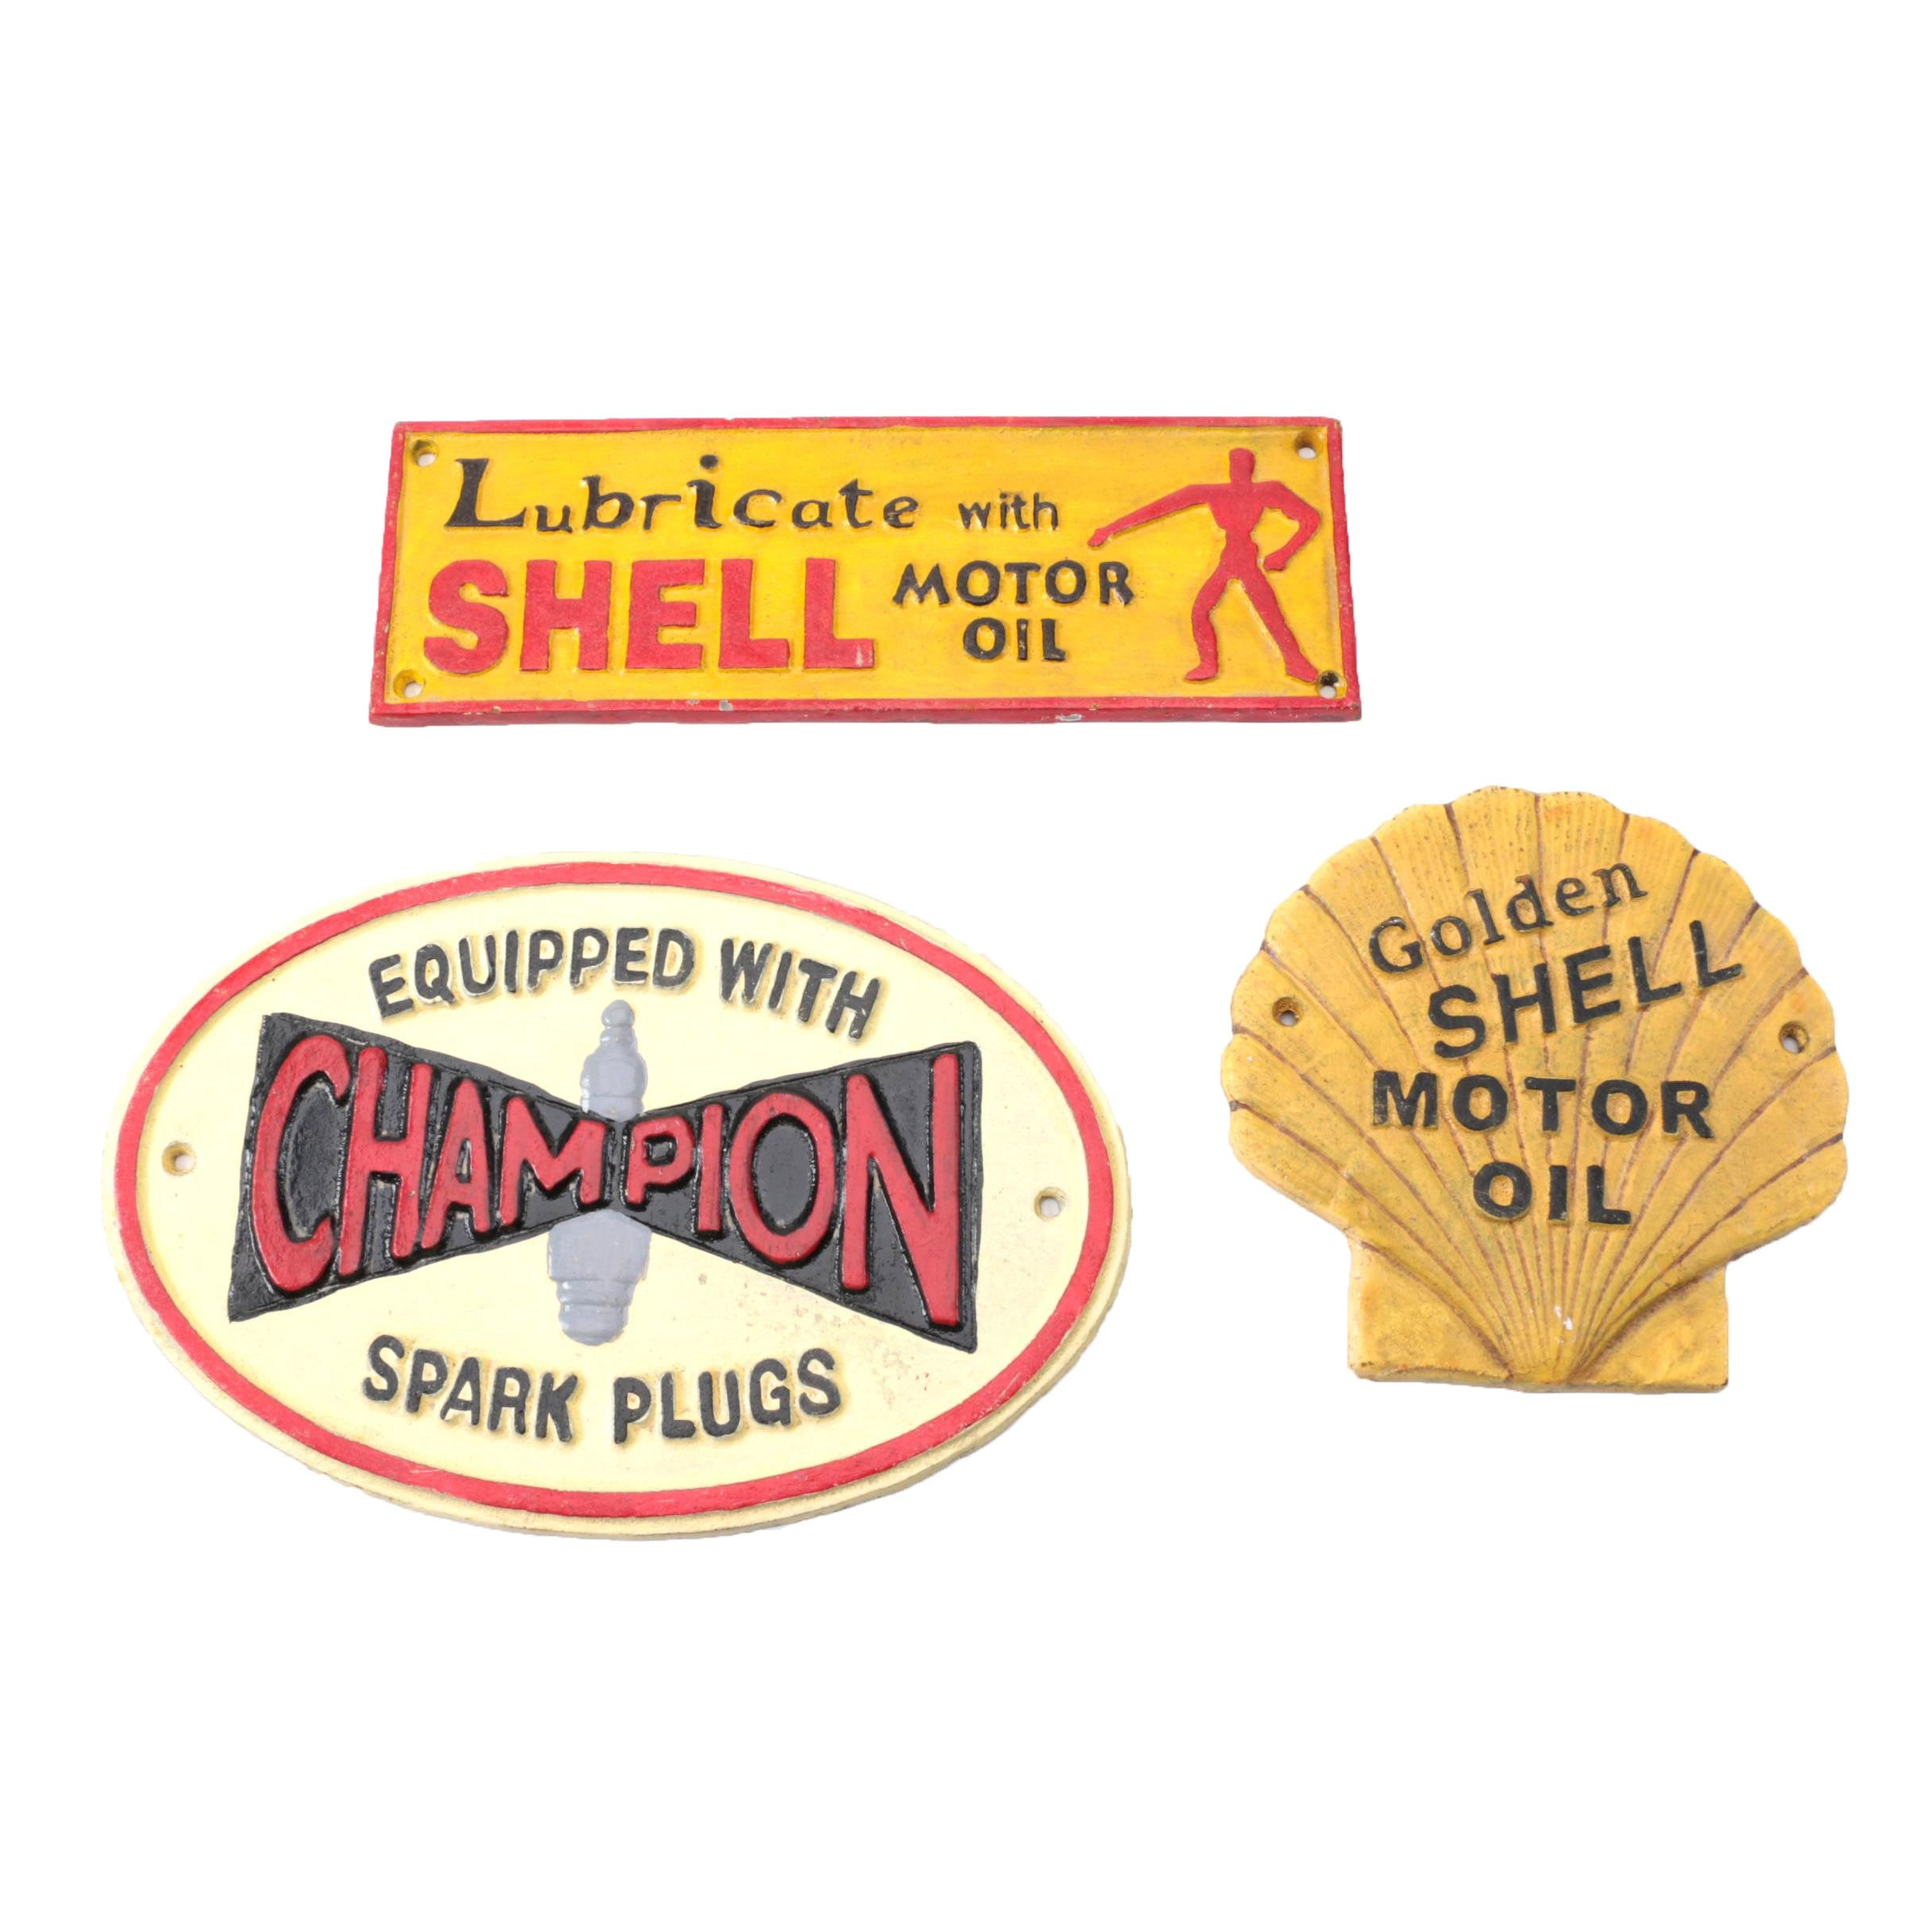 Cast Iron Signs for Shell Oil and Champion Spark Plugs